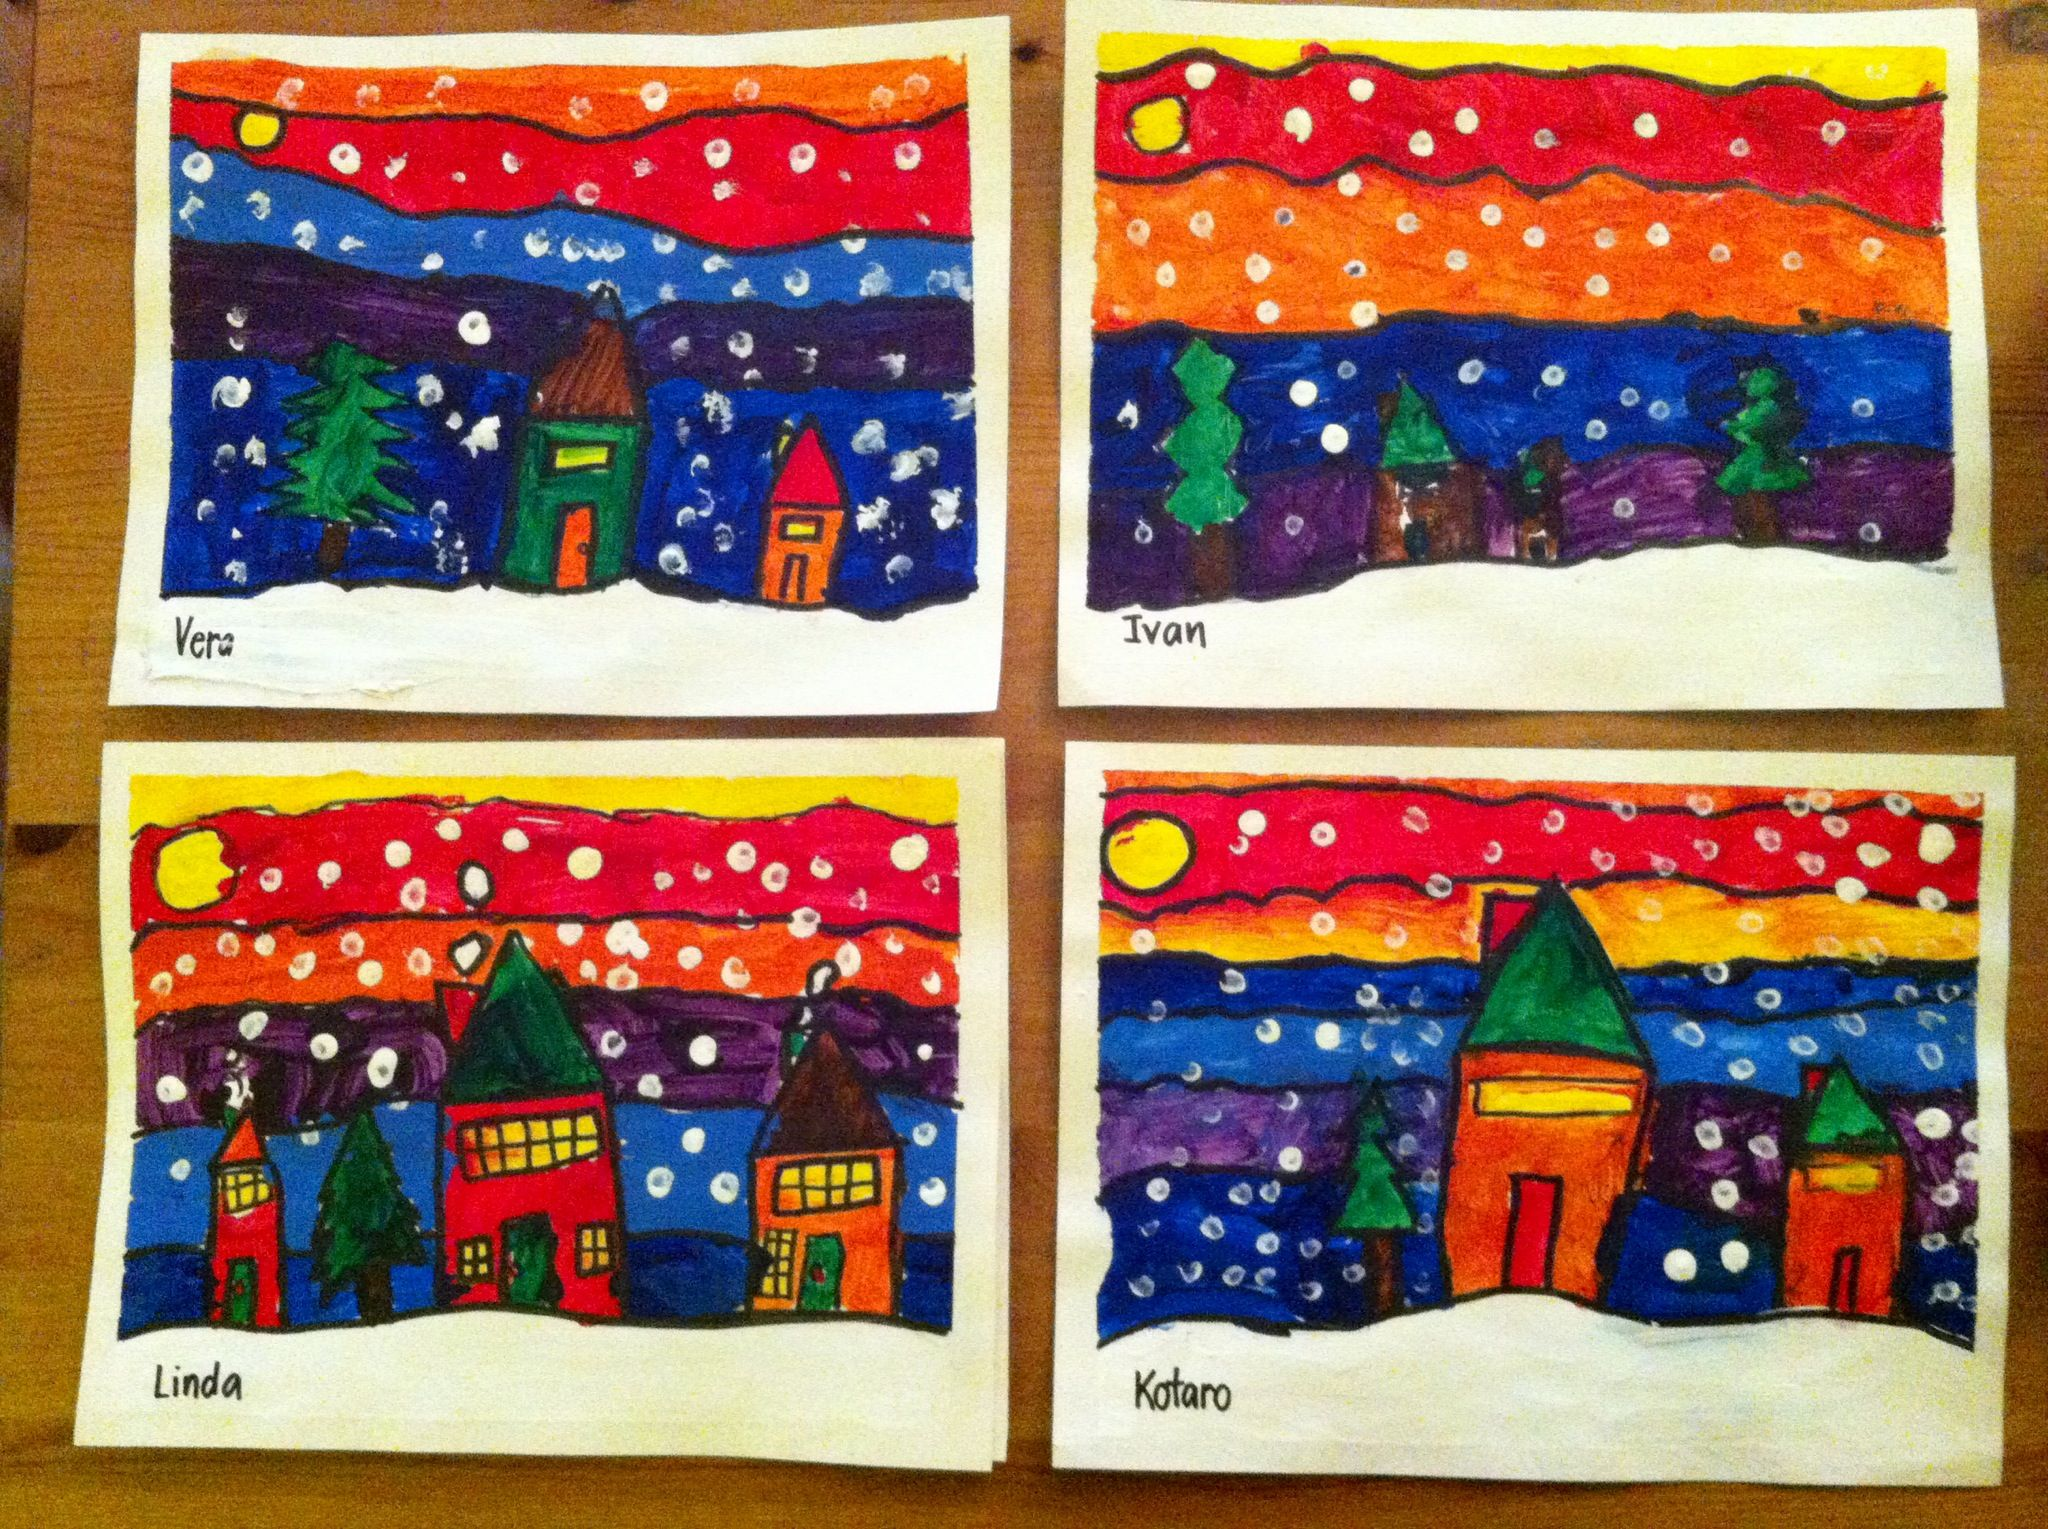 Kindergarten And Grade 1 Art In The Style Of Ted Harrison